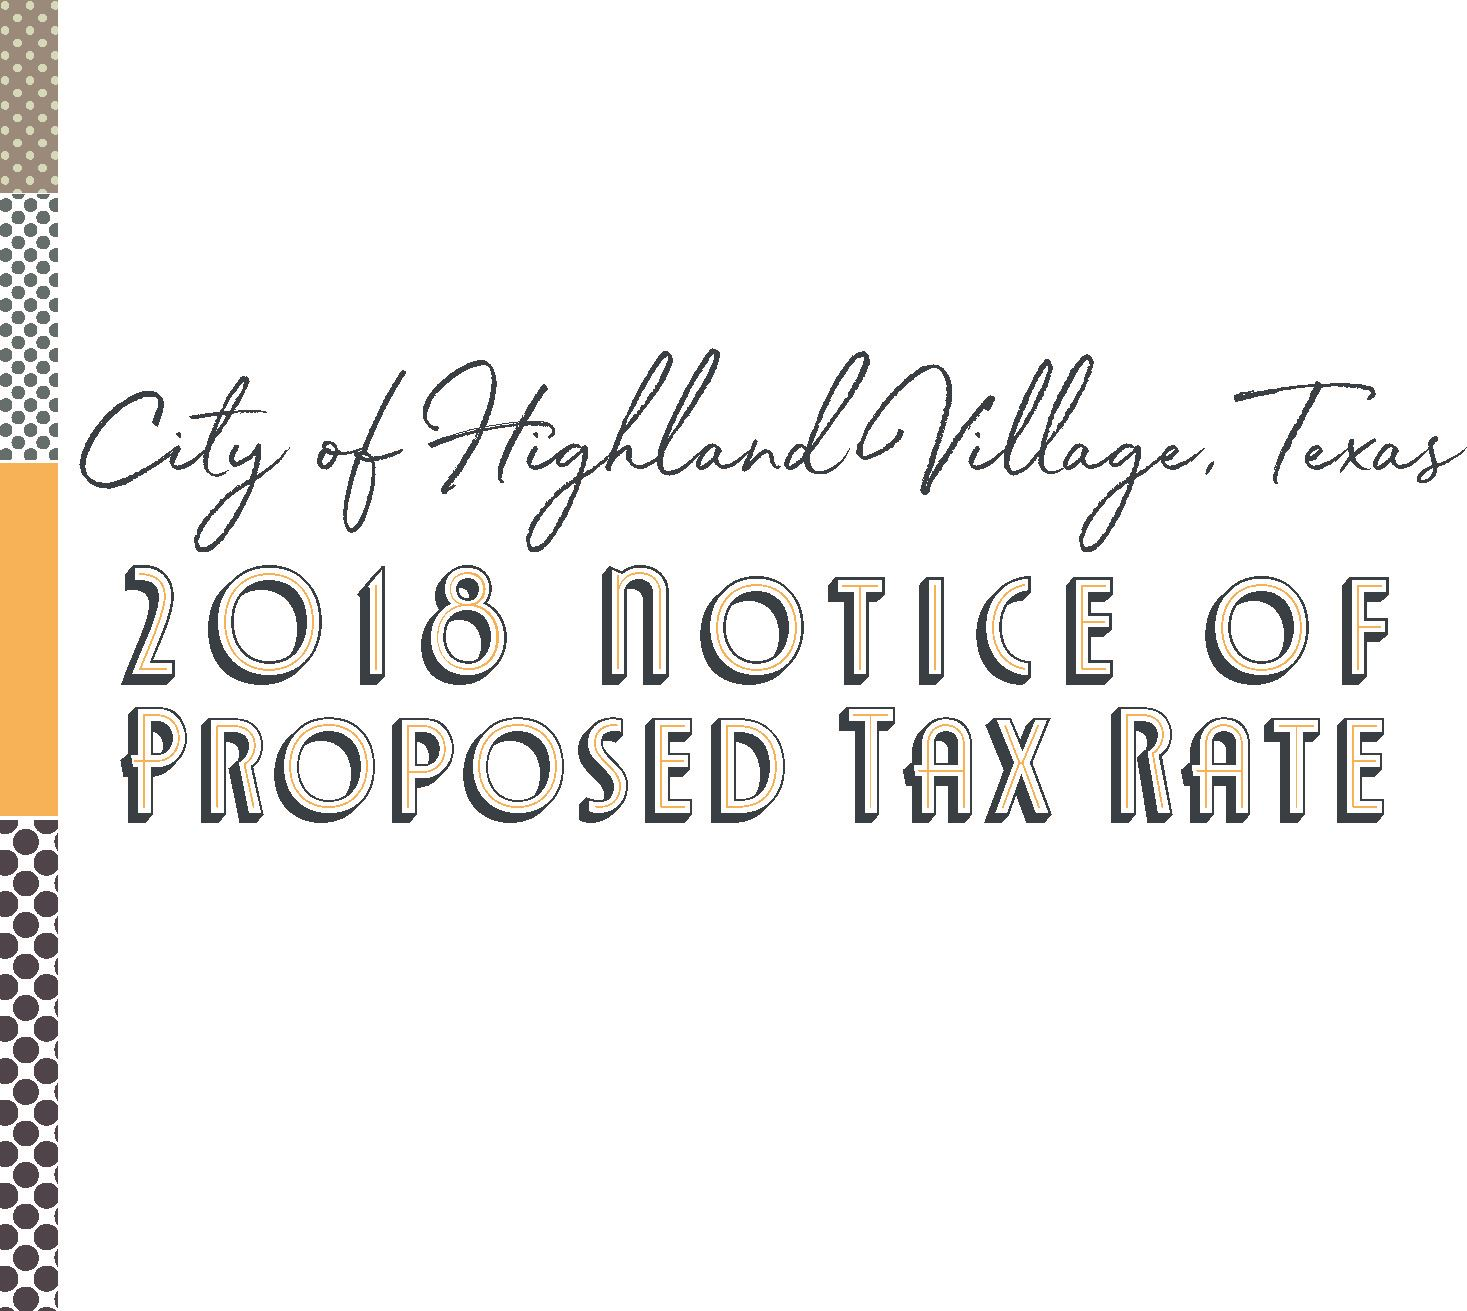 2018 Notice of Proposed Tax Rate